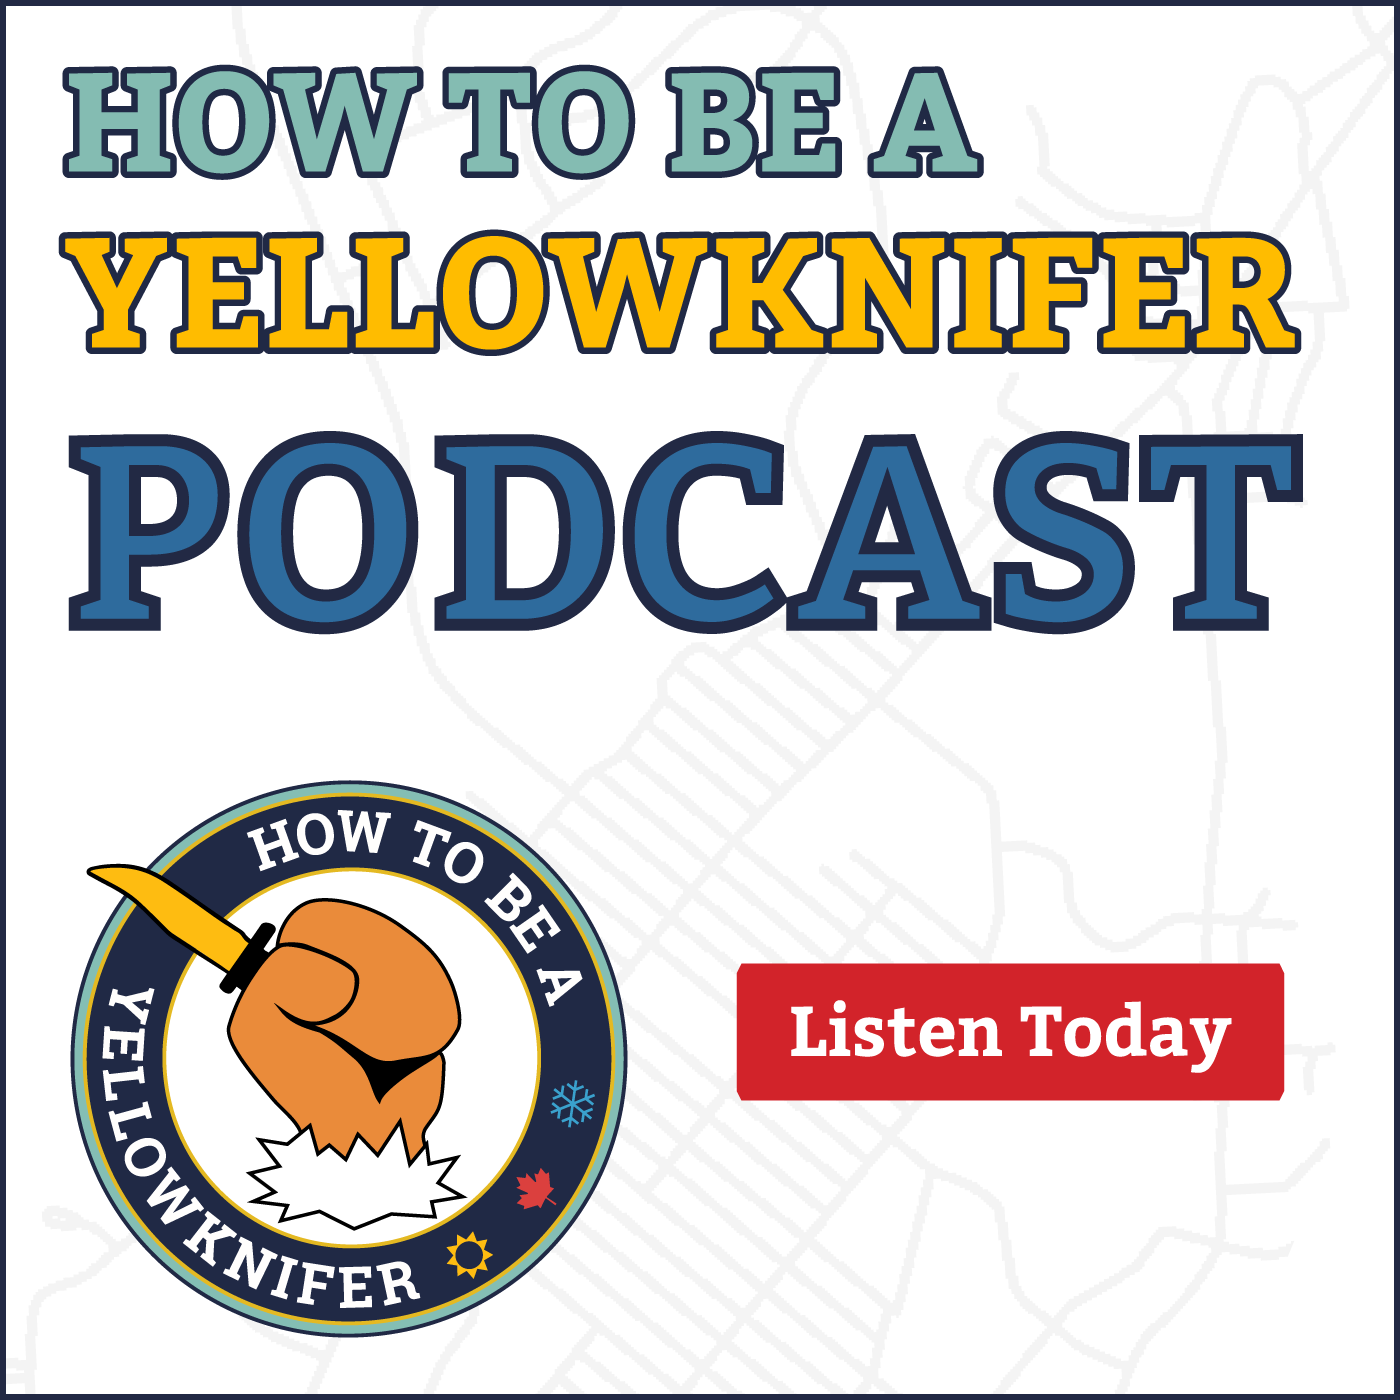 How To Be a Yellowknifer Podcast